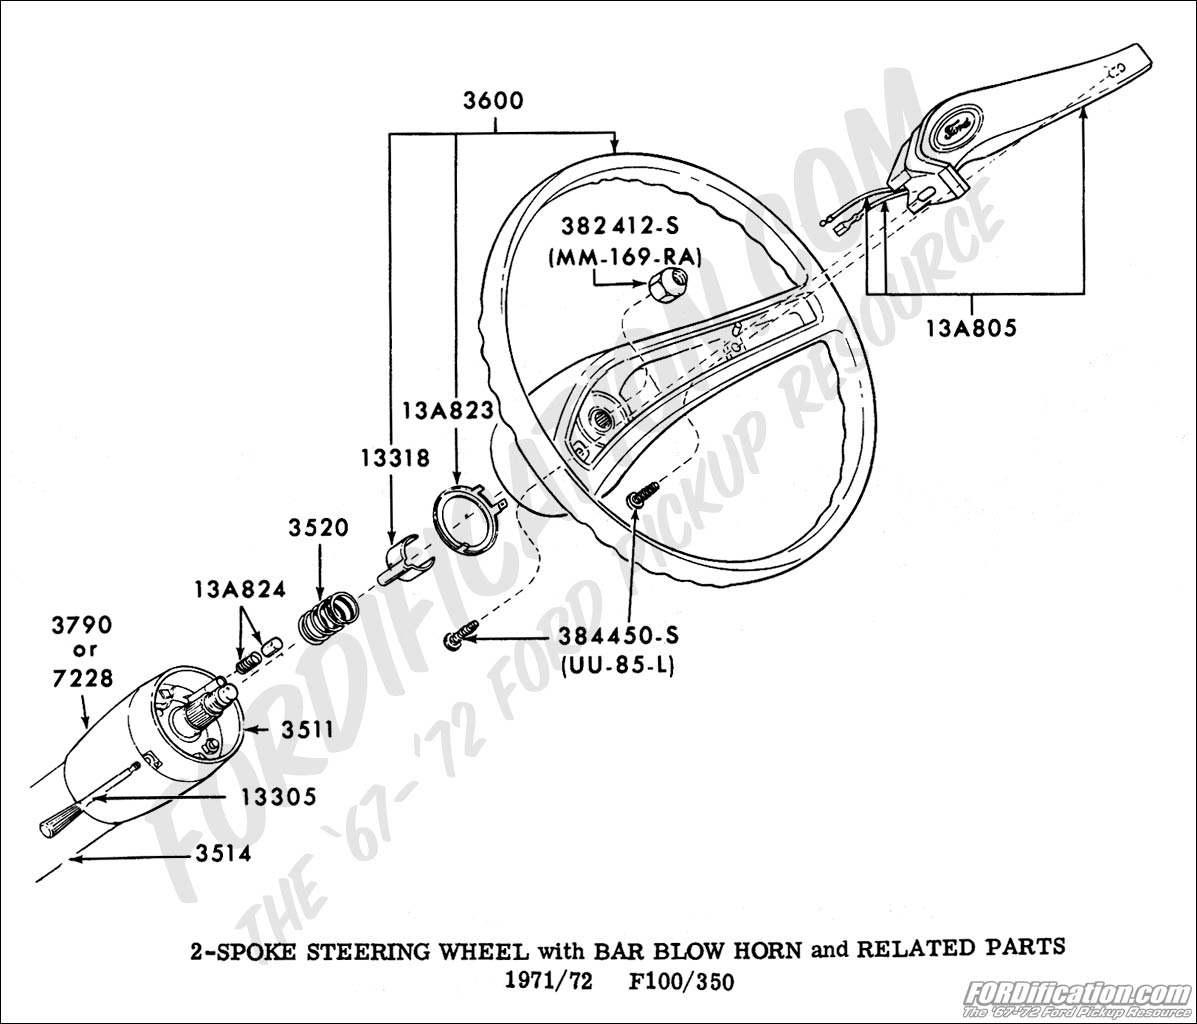 1989 Mustang Wiring Diagram Conventional Fire Alarm Auto